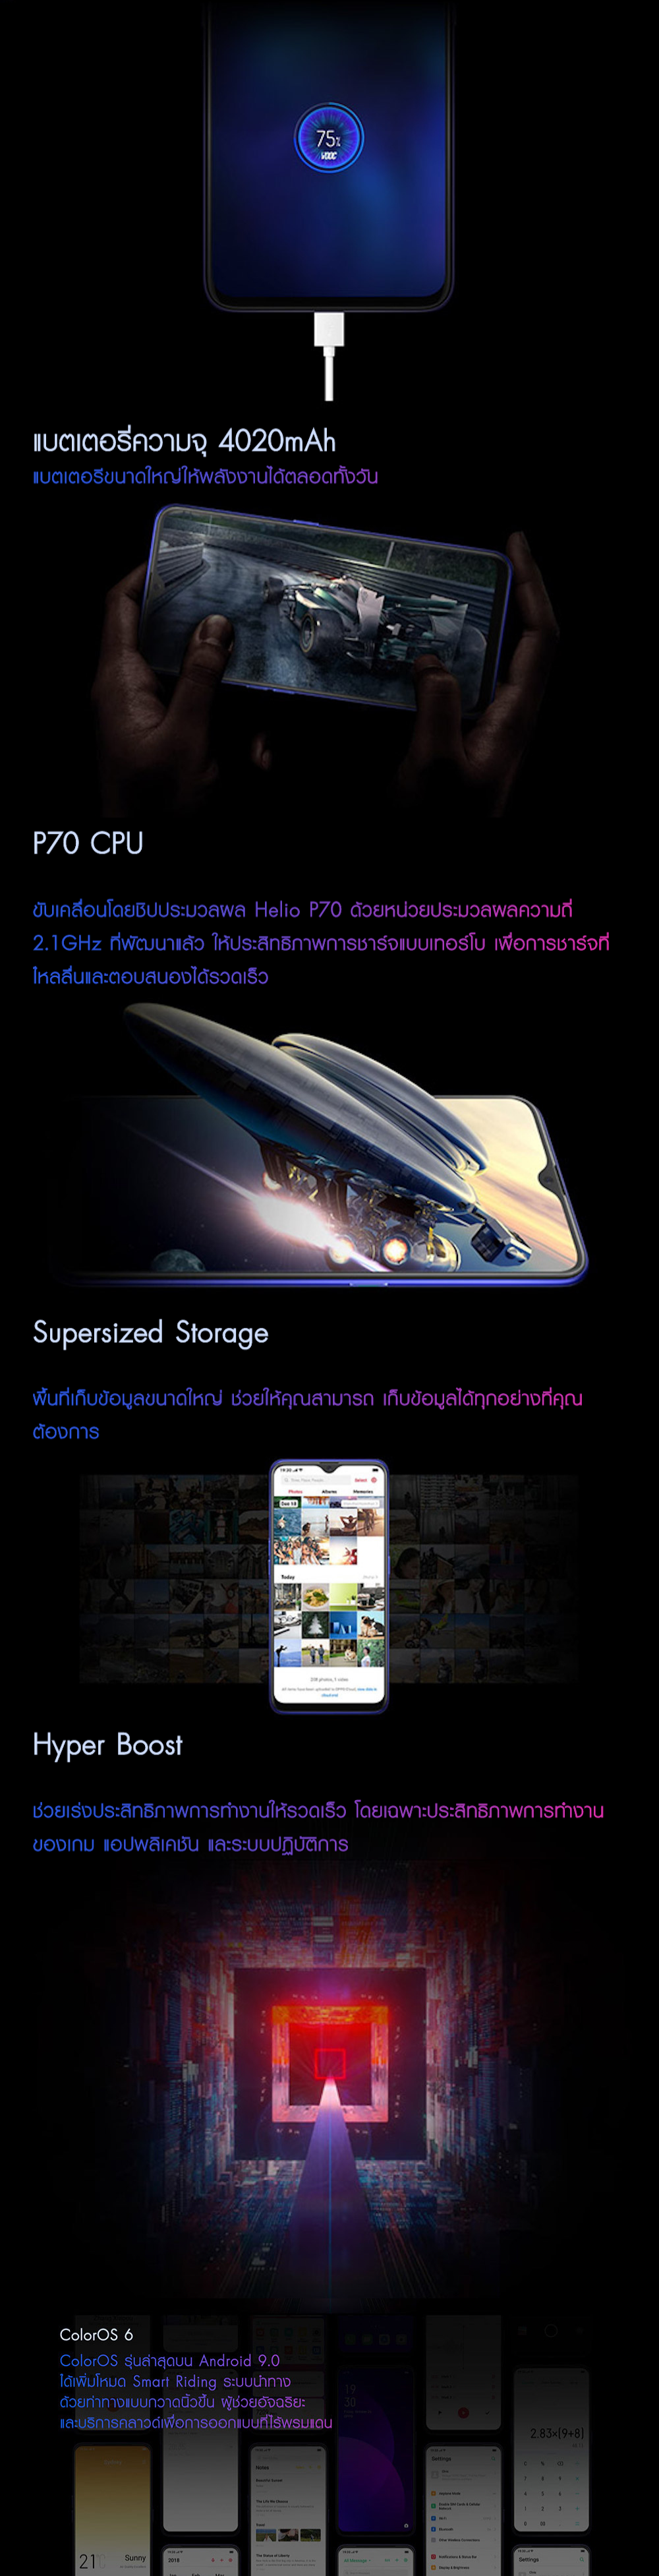 3-lp-oppo-f11.png